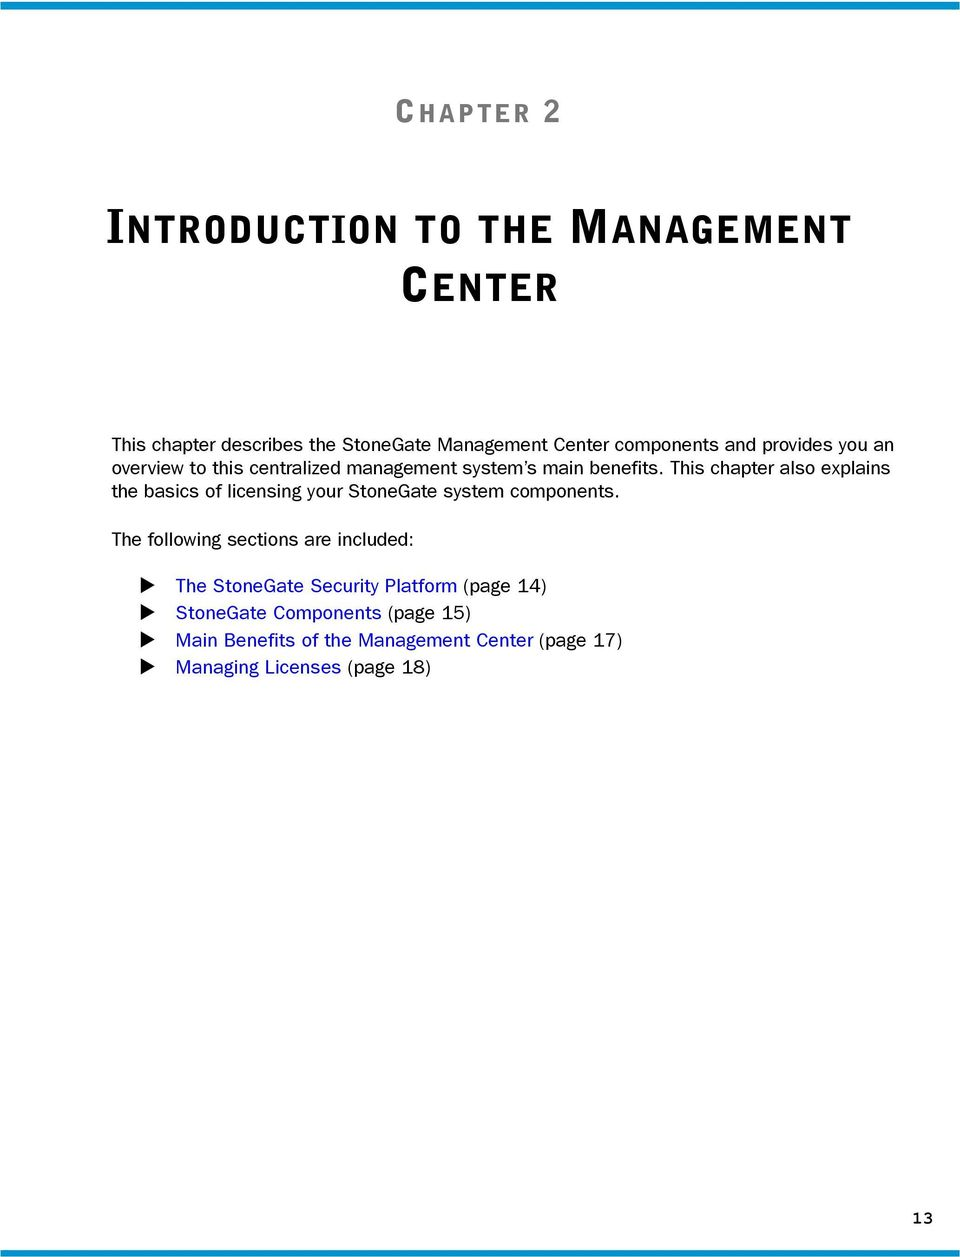 This chapter also explains the basics of licensing your StoneGate system components.